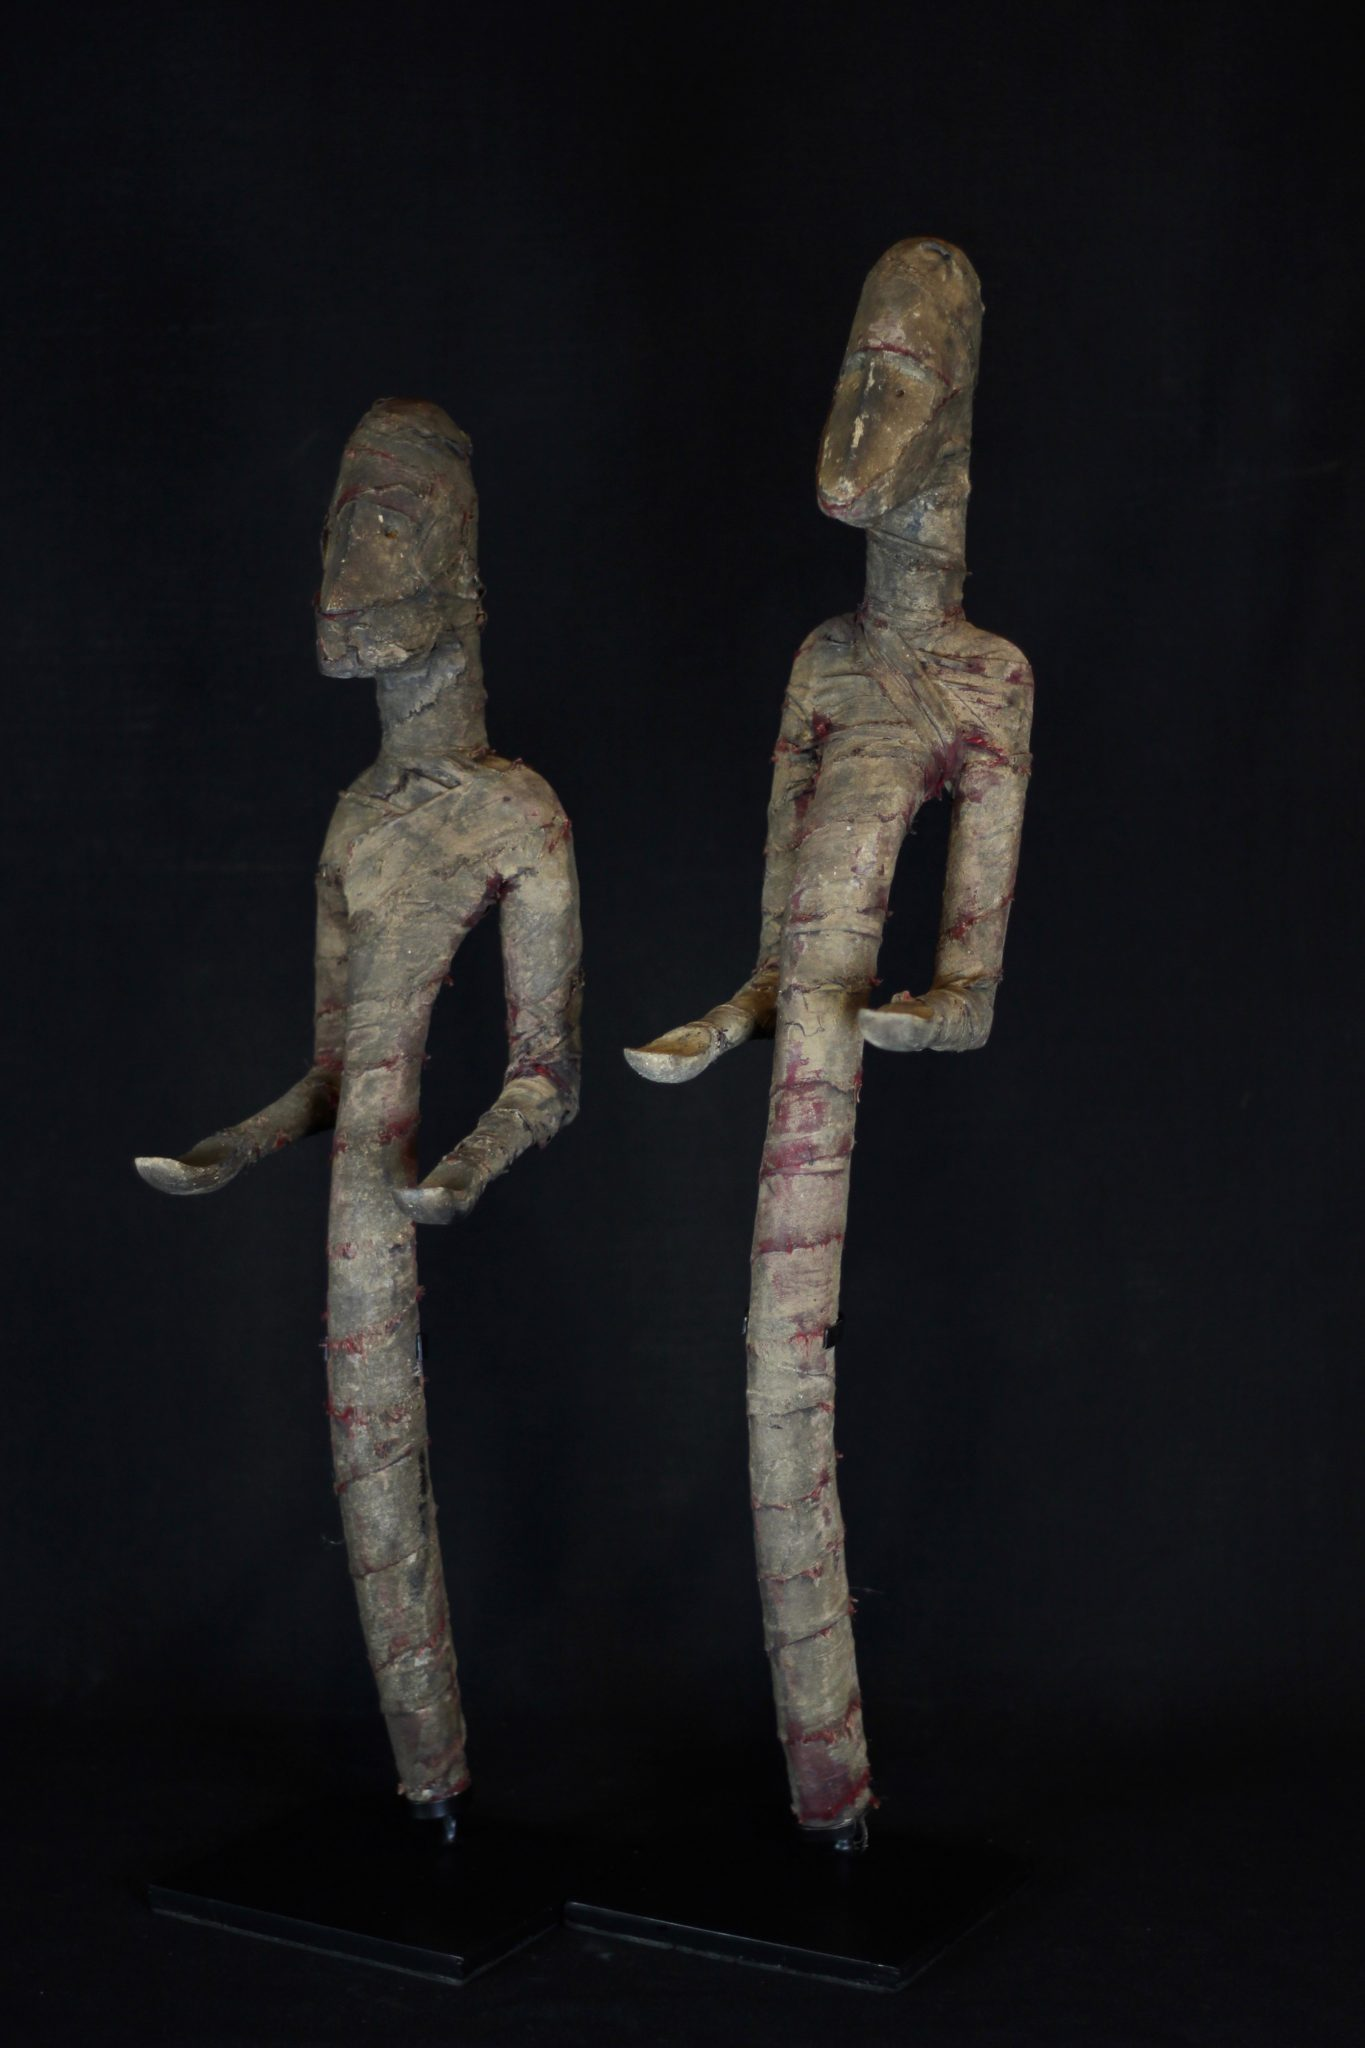 "Shaman Figure (rare), Atauro Island, Lesser Sunda Islands, Indonesia Early 20th c. Wood, cloth. Used to protect people from harmful spirits during rituals. Faded and patinated with use and age, original red color of cloth still visible. Dimensions: (left - 22 ½"" 5 ½' x 7 ½"", $1200.); (right - 25 ¼' x 4 ¼"" x 6 ½"", $1200.)"